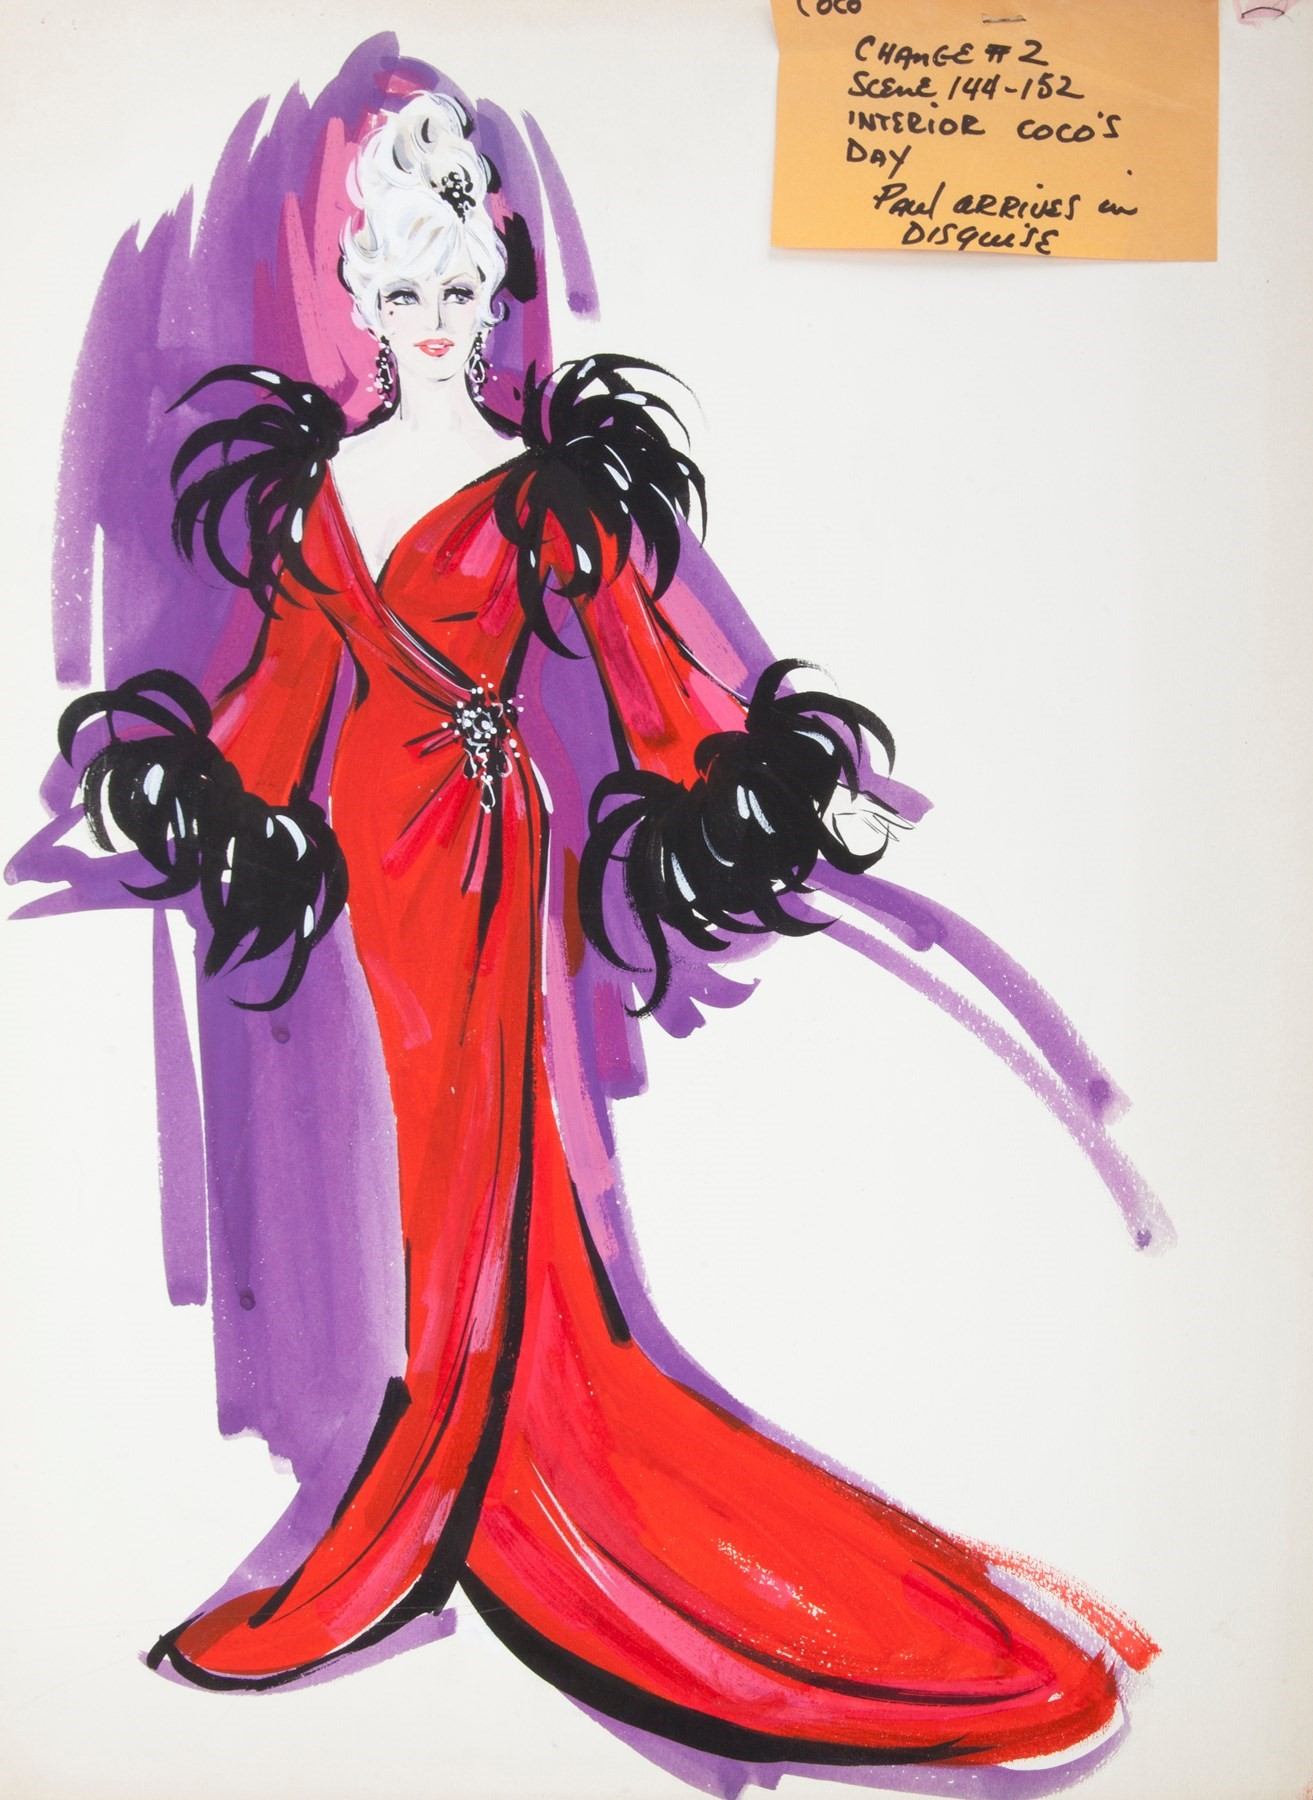 71643.00 MAE WEST THE ART OF LOVE COSTUME ILLUSTRA